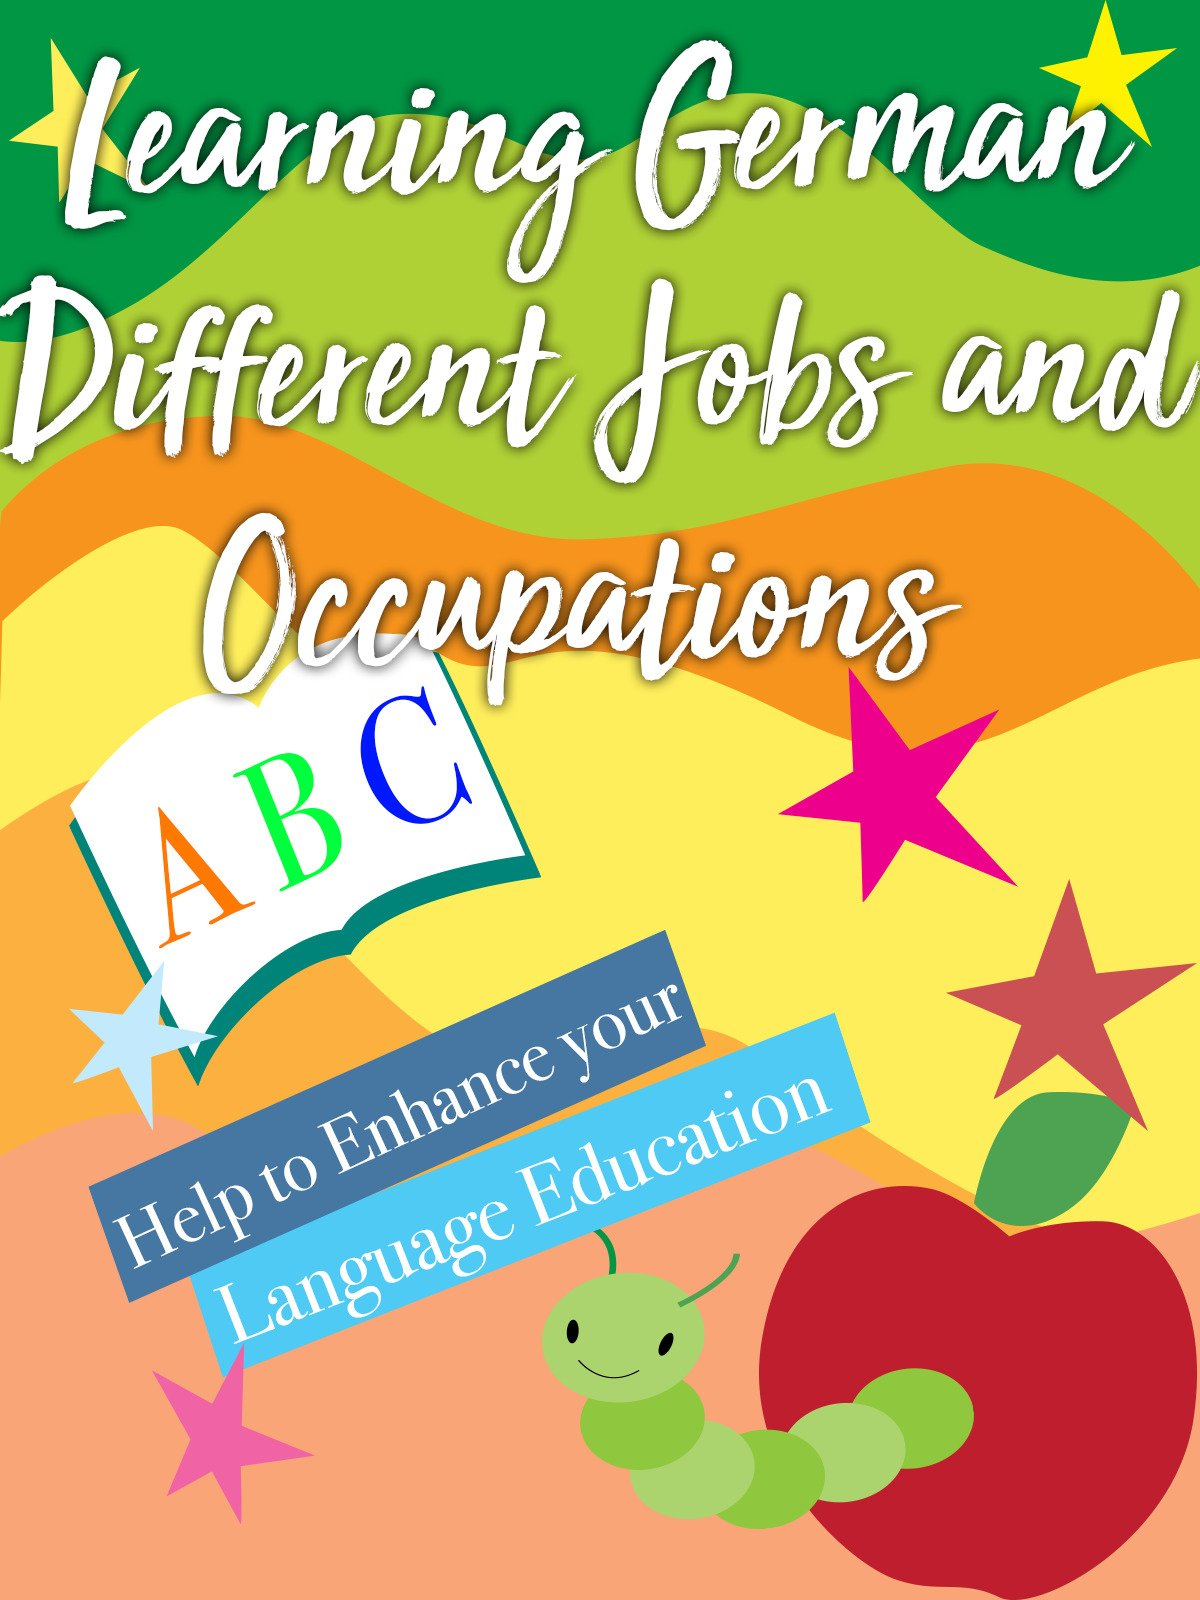 Learning German Different Jobs and Occupations Help to Enhance Language Education on Amazon Prime Instant Video UK